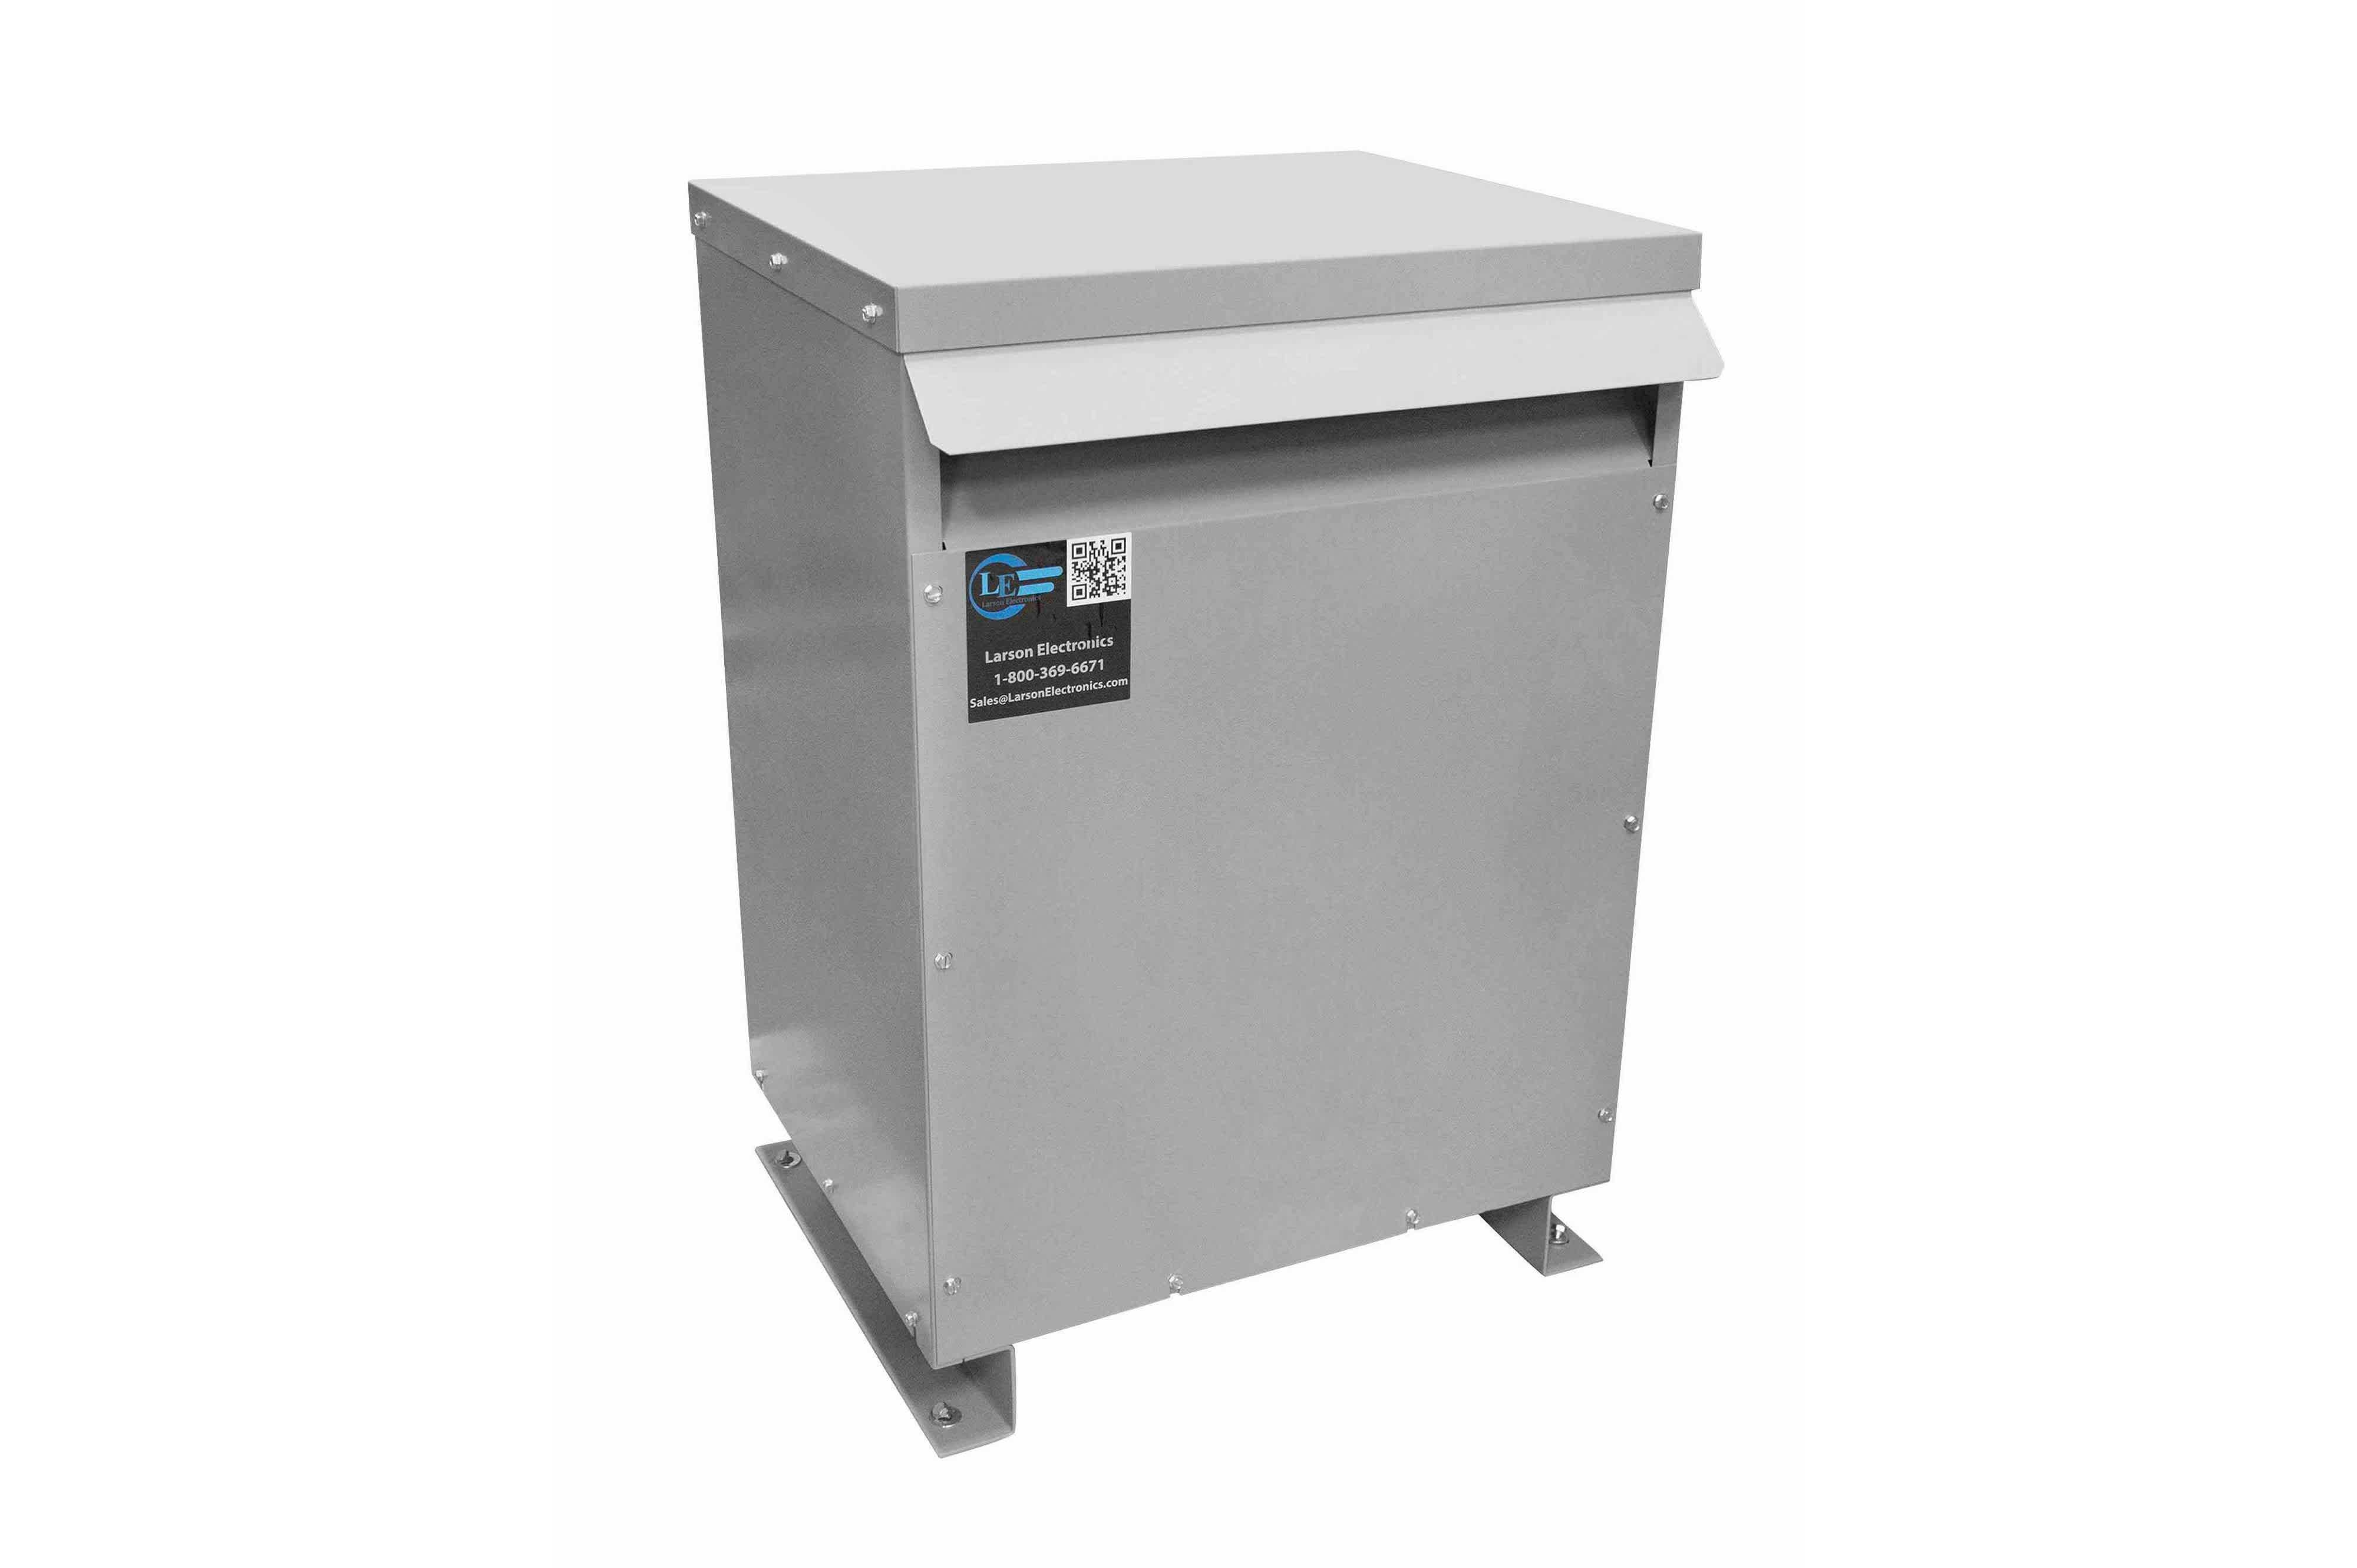 15 kVA 3PH DOE Transformer, 380V Delta Primary, 240V/120 Delta Secondary, N3R, Ventilated, 60 Hz